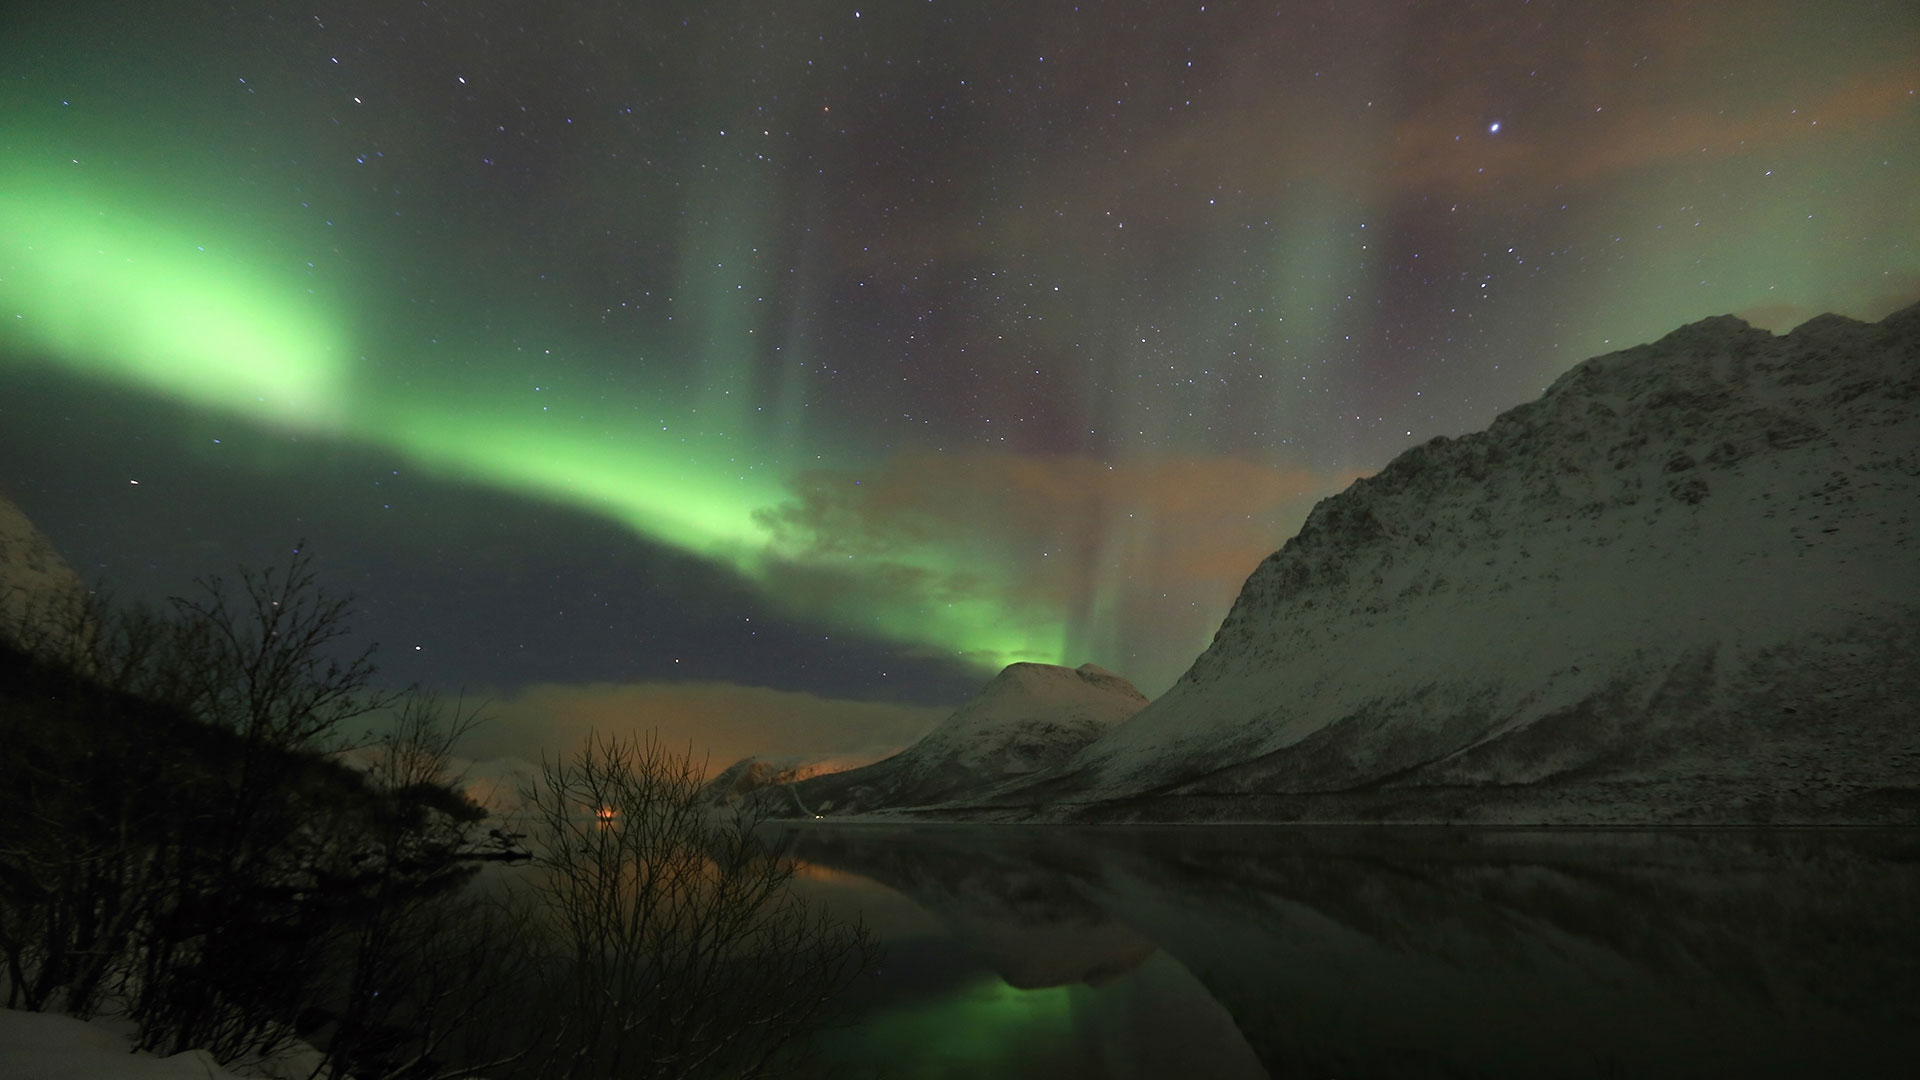 whale watching northern lights in troms 4 days 3 nights nordic visitor. Black Bedroom Furniture Sets. Home Design Ideas